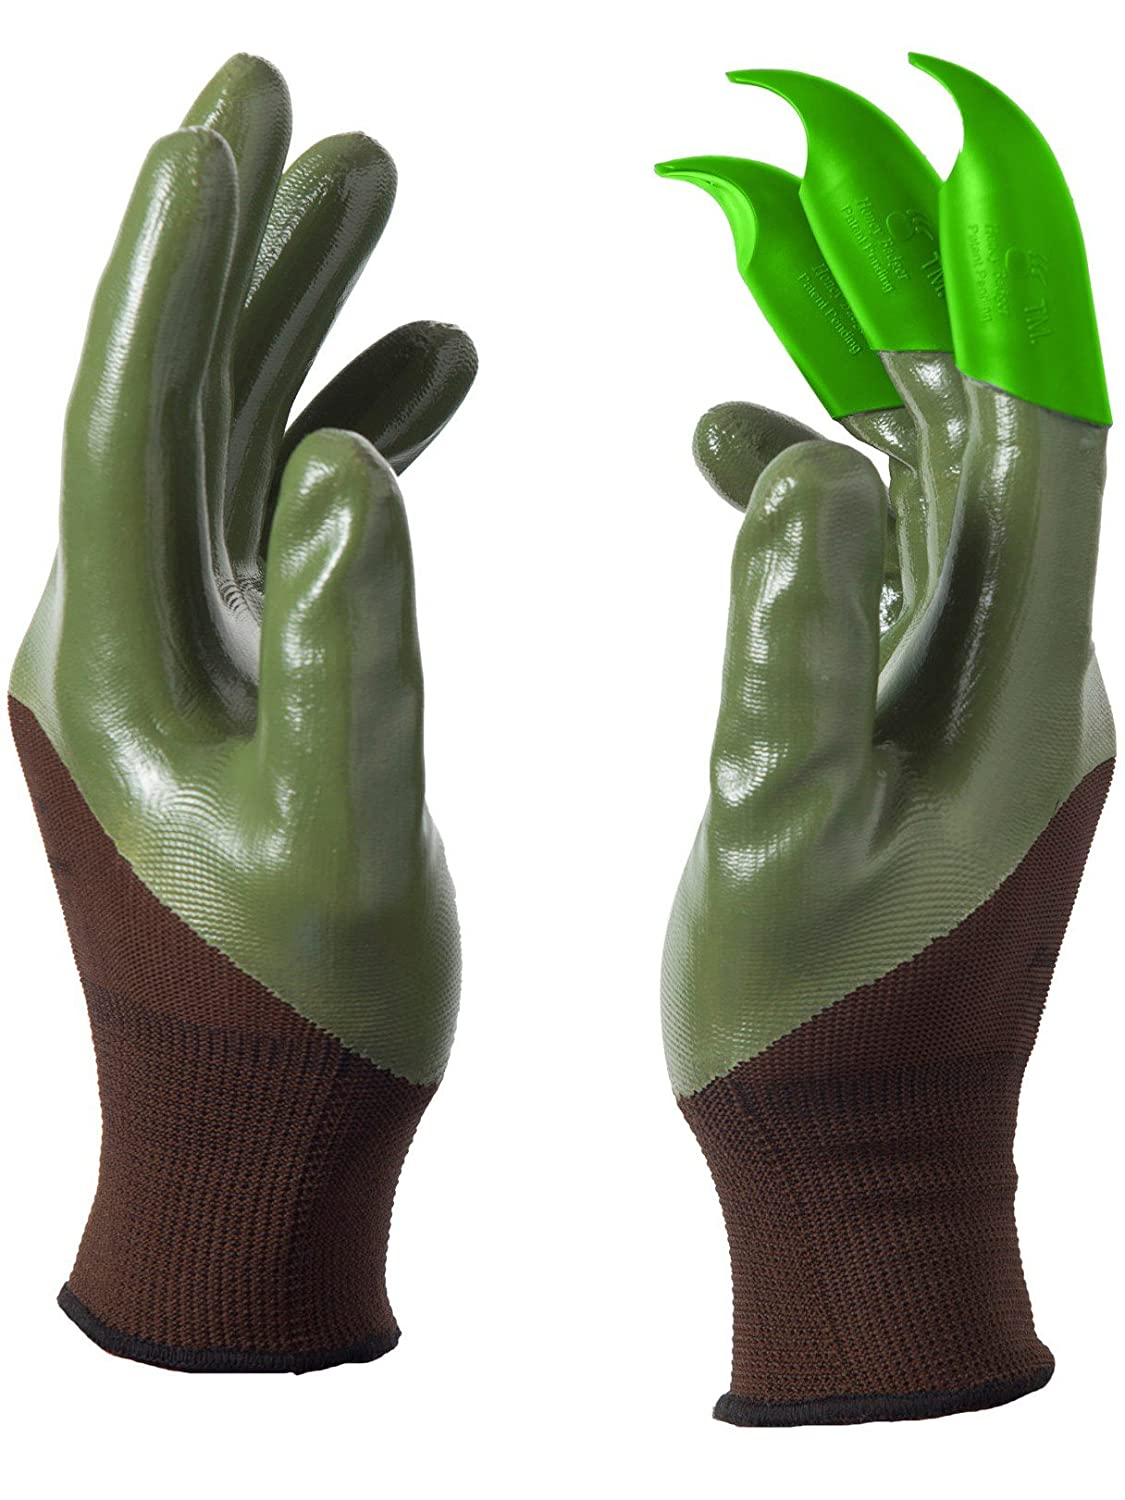 designer gardening gloves. Amazon com  Honey Badger Garden Gloves for Digging Planting No More Worn Out Fingertips Claws on RIGHT Hand Womens Mens Unisex PATENT PENDING